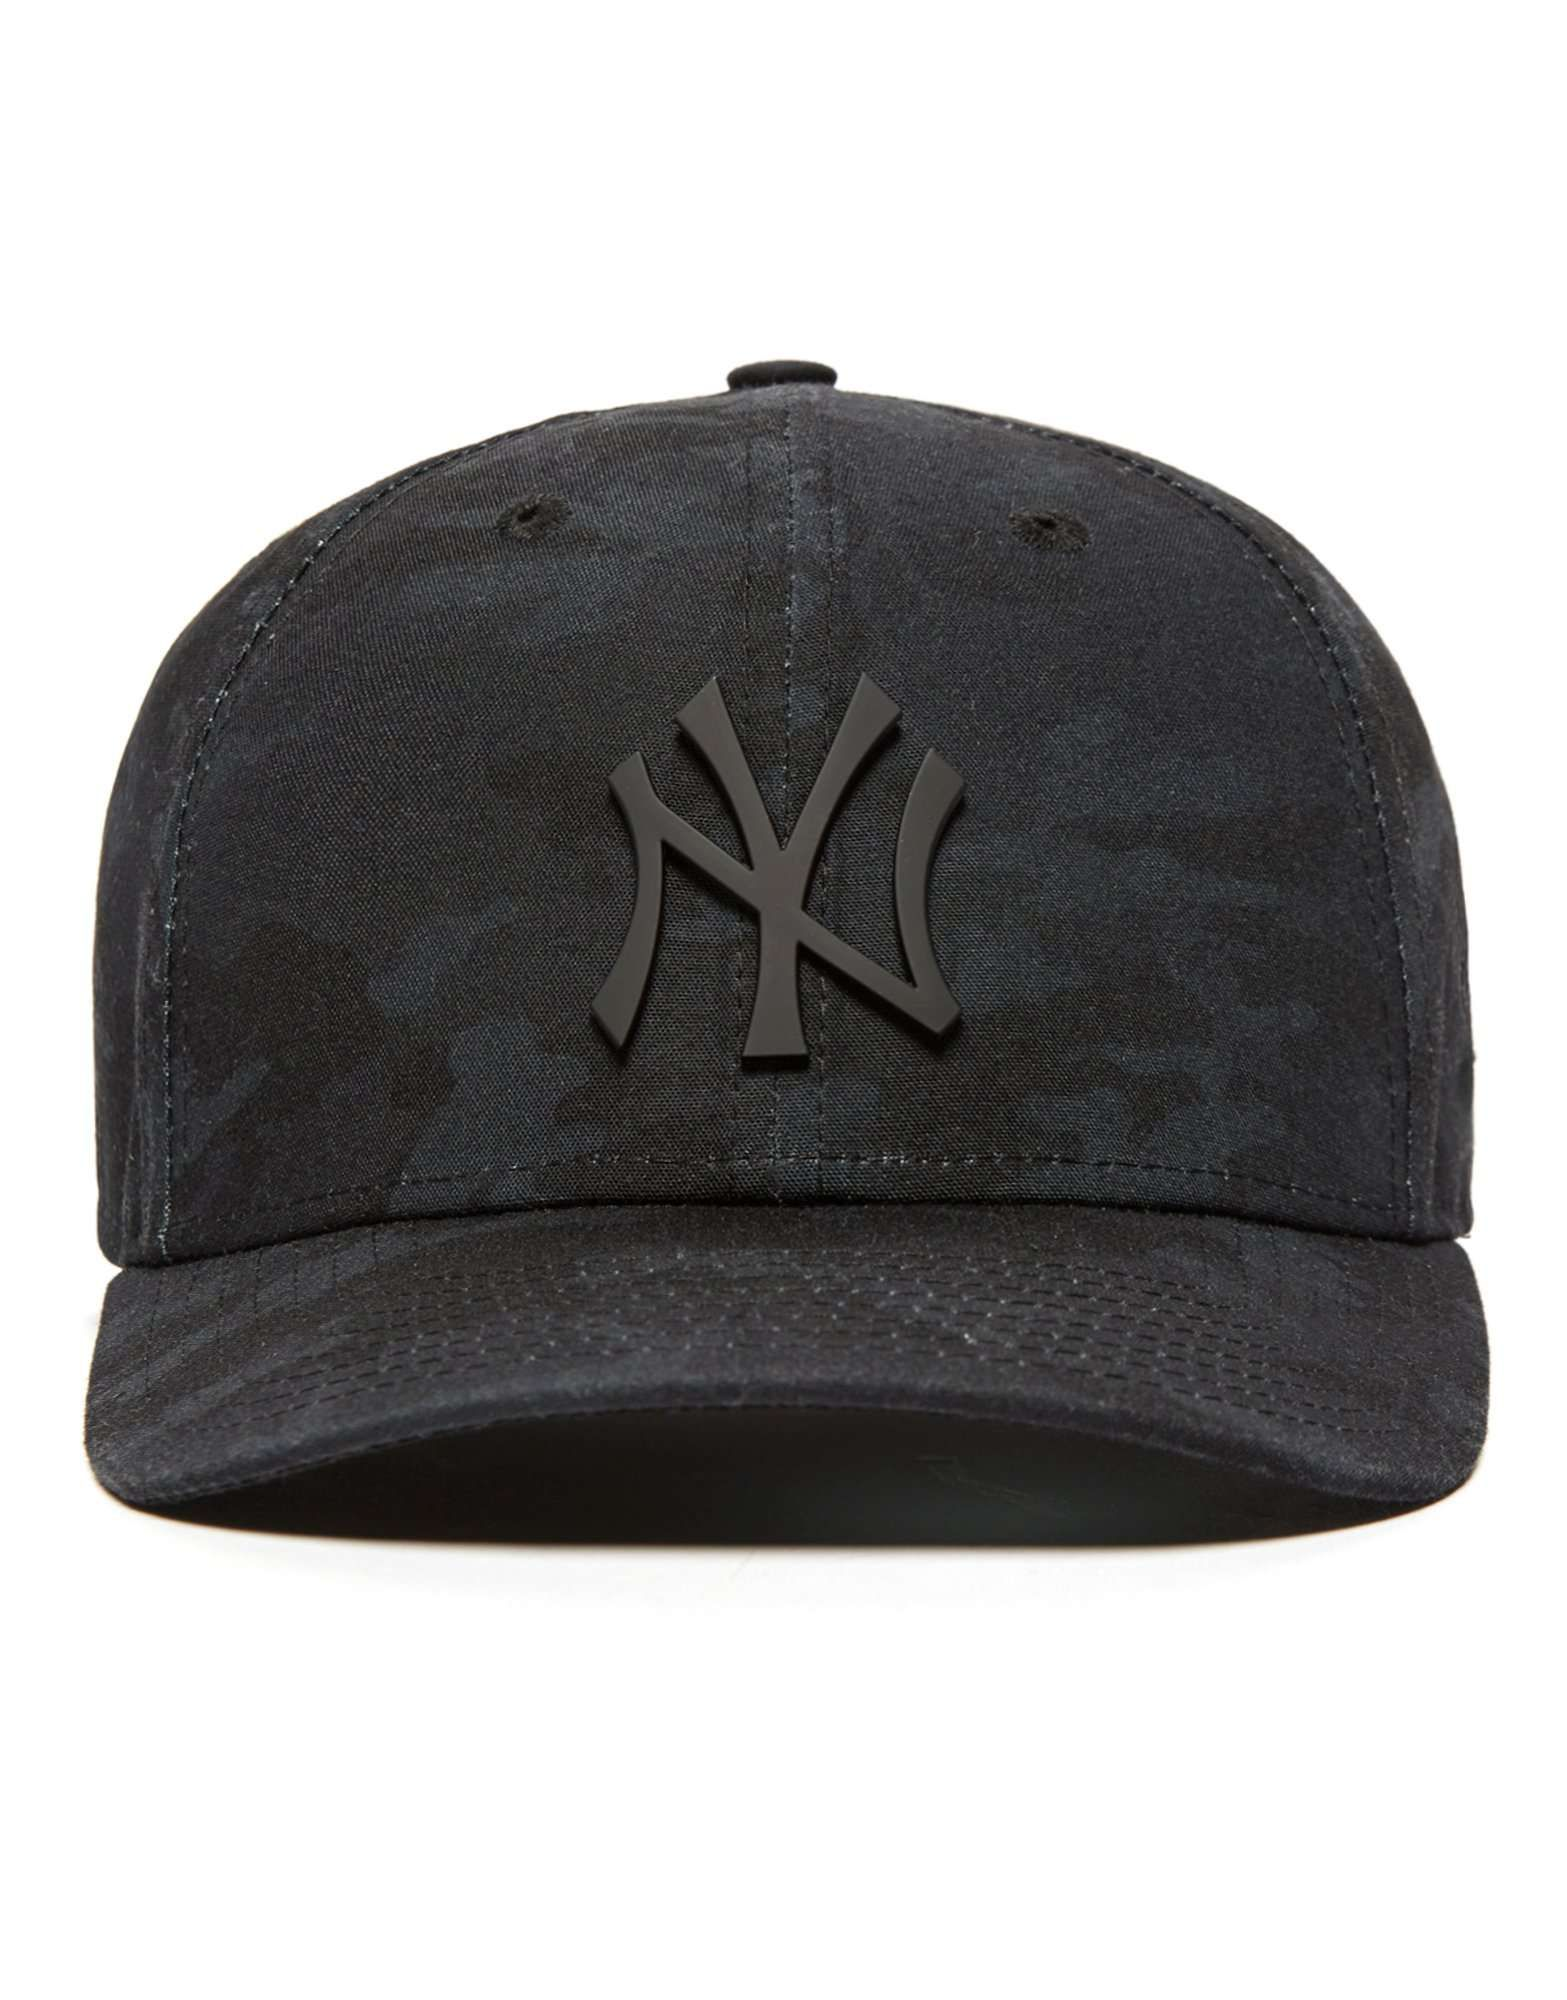 99b02ba399f New Era 9FORTY MLB New York Yankees Cap - Shop online for New Era 9FORTY  MLB New York Yankees Cap with JD Sports